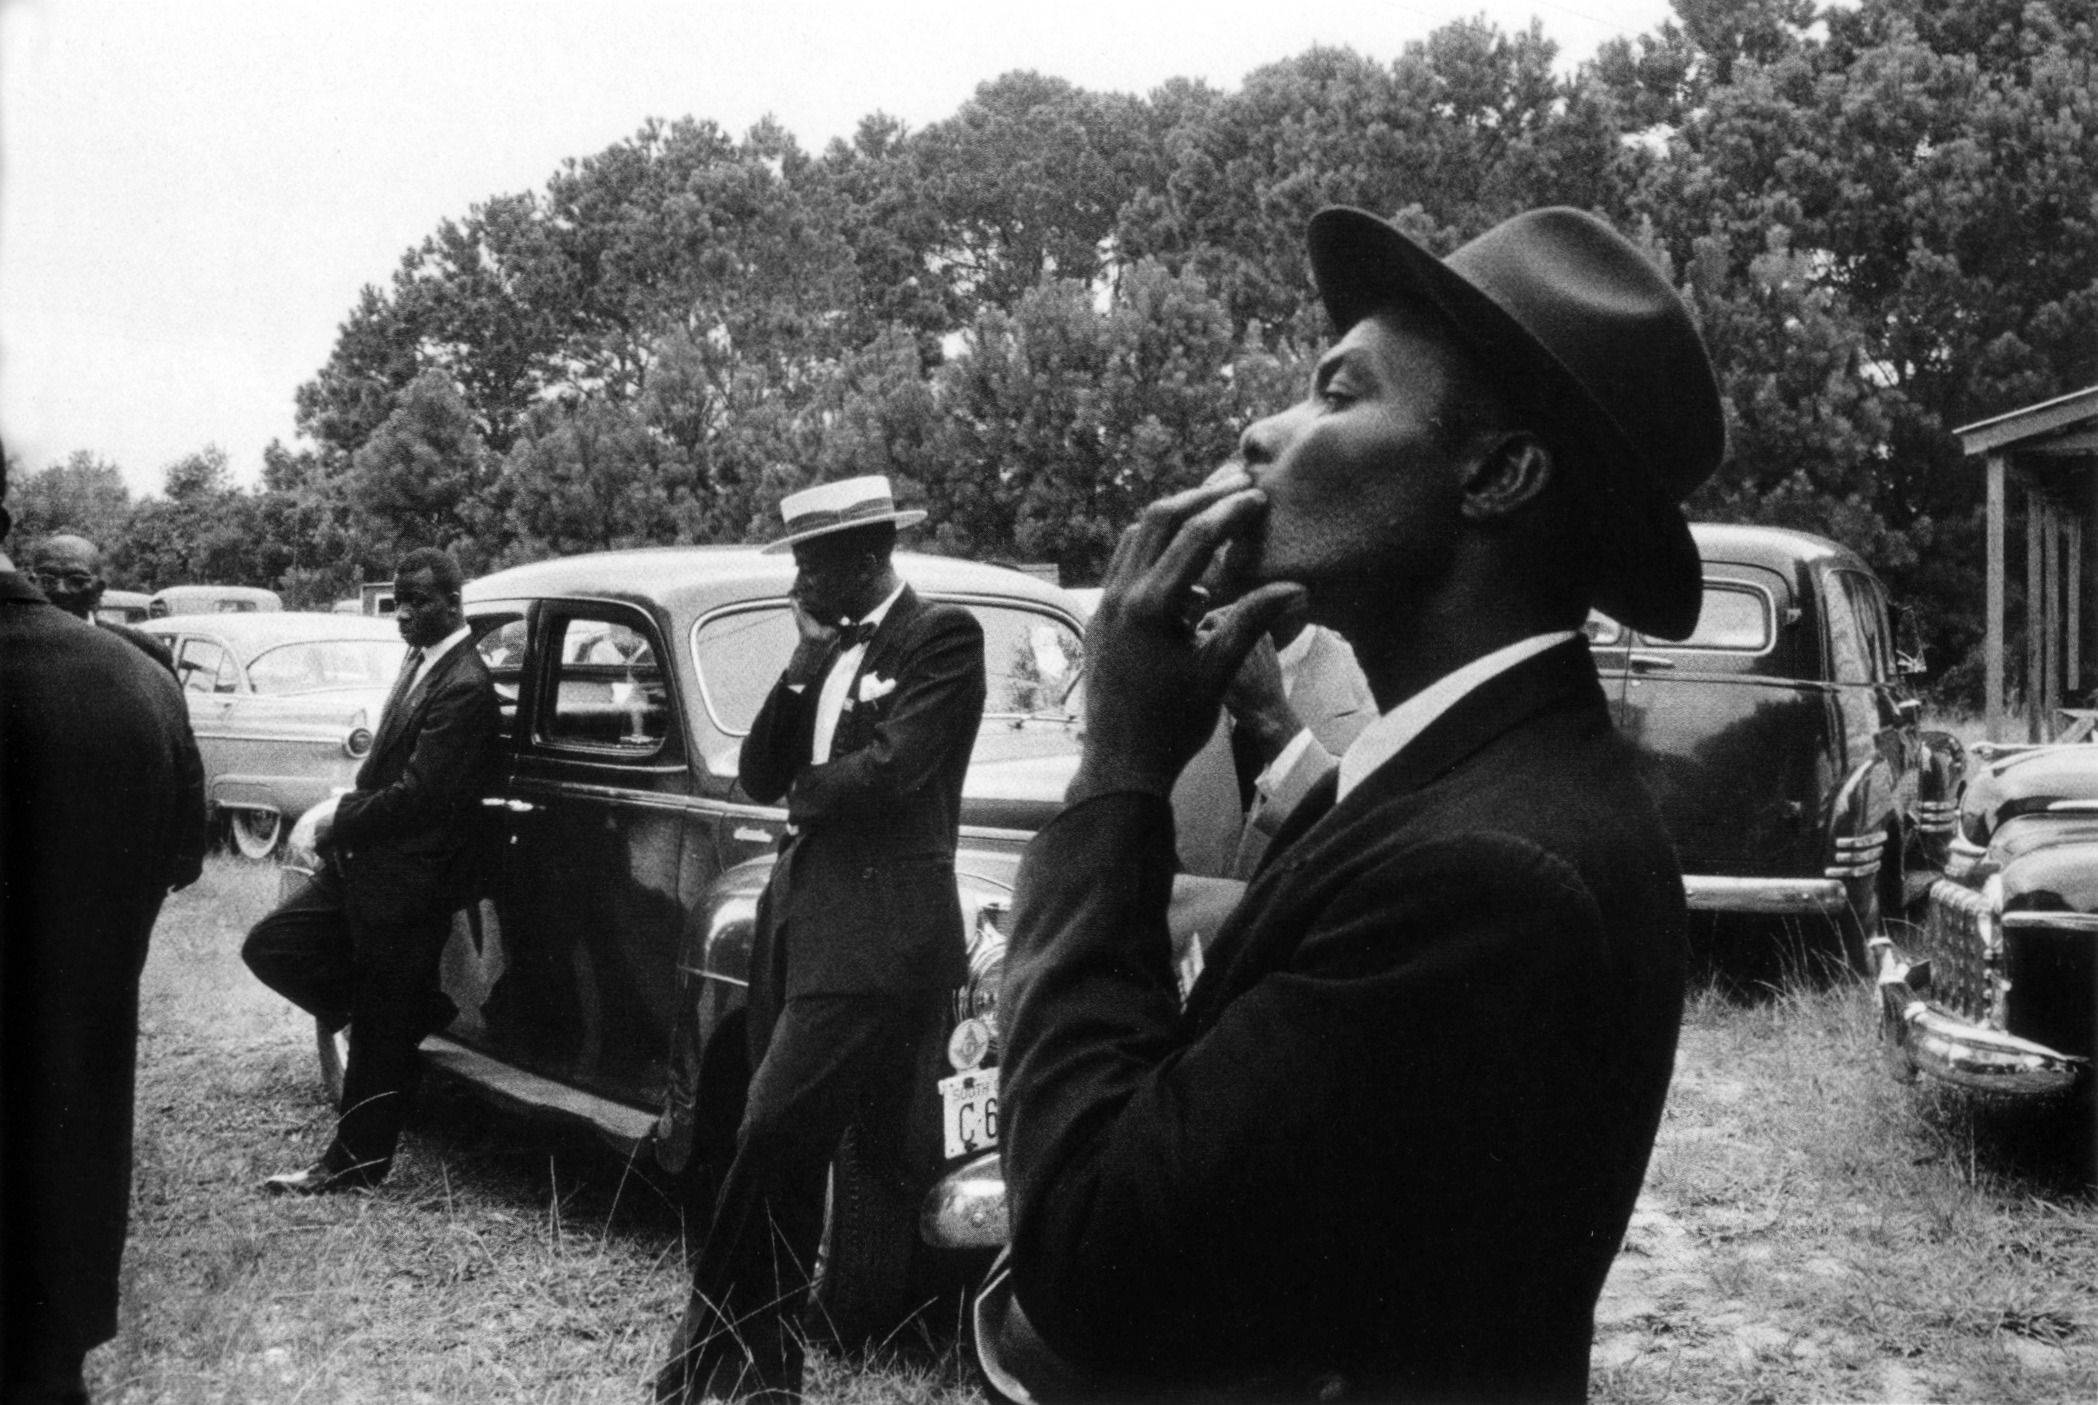 Funeral-St. Helena, South Carolina 1955